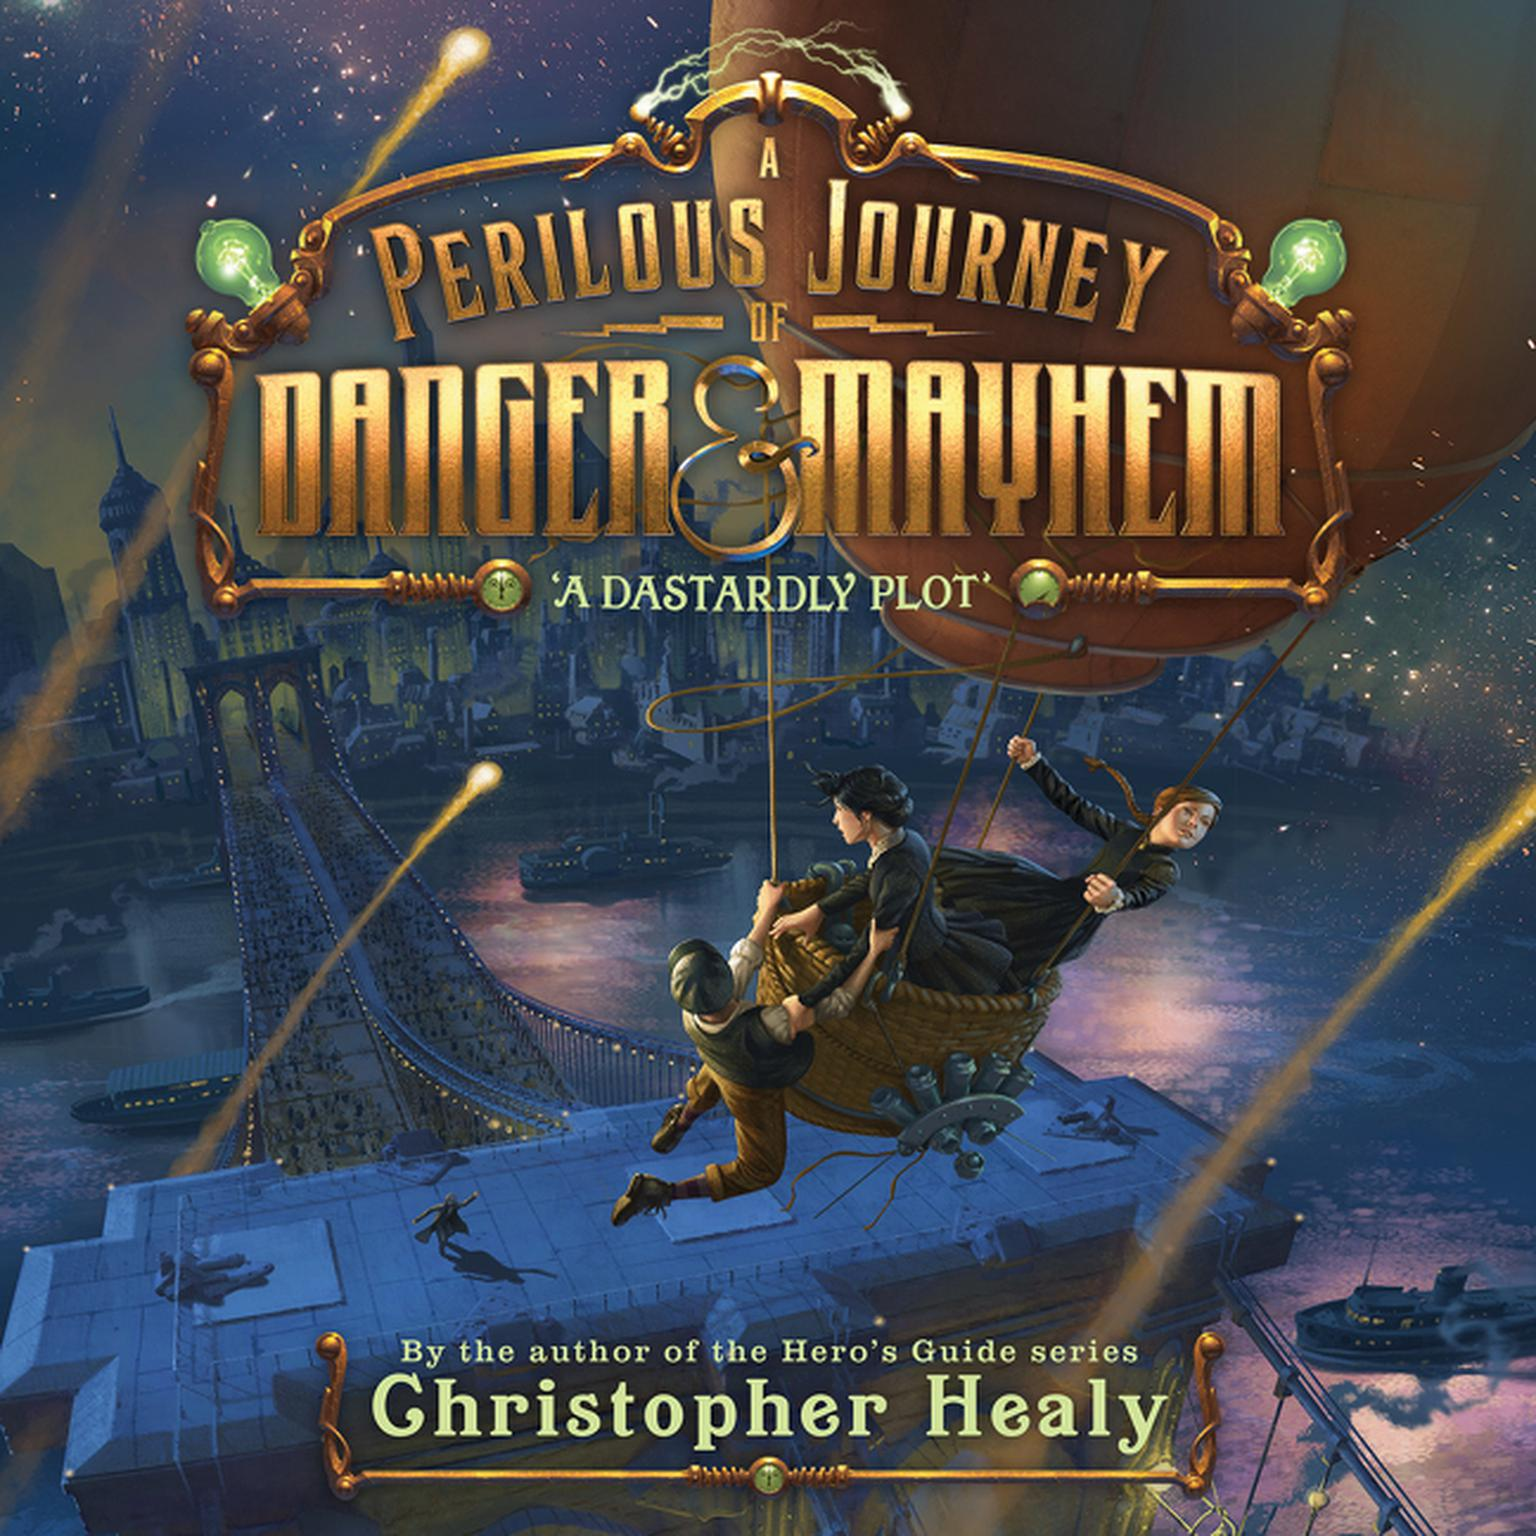 Printable A Perilous Journey of Danger and Mayhem #1: A Dastardly Plot Audiobook Cover Art